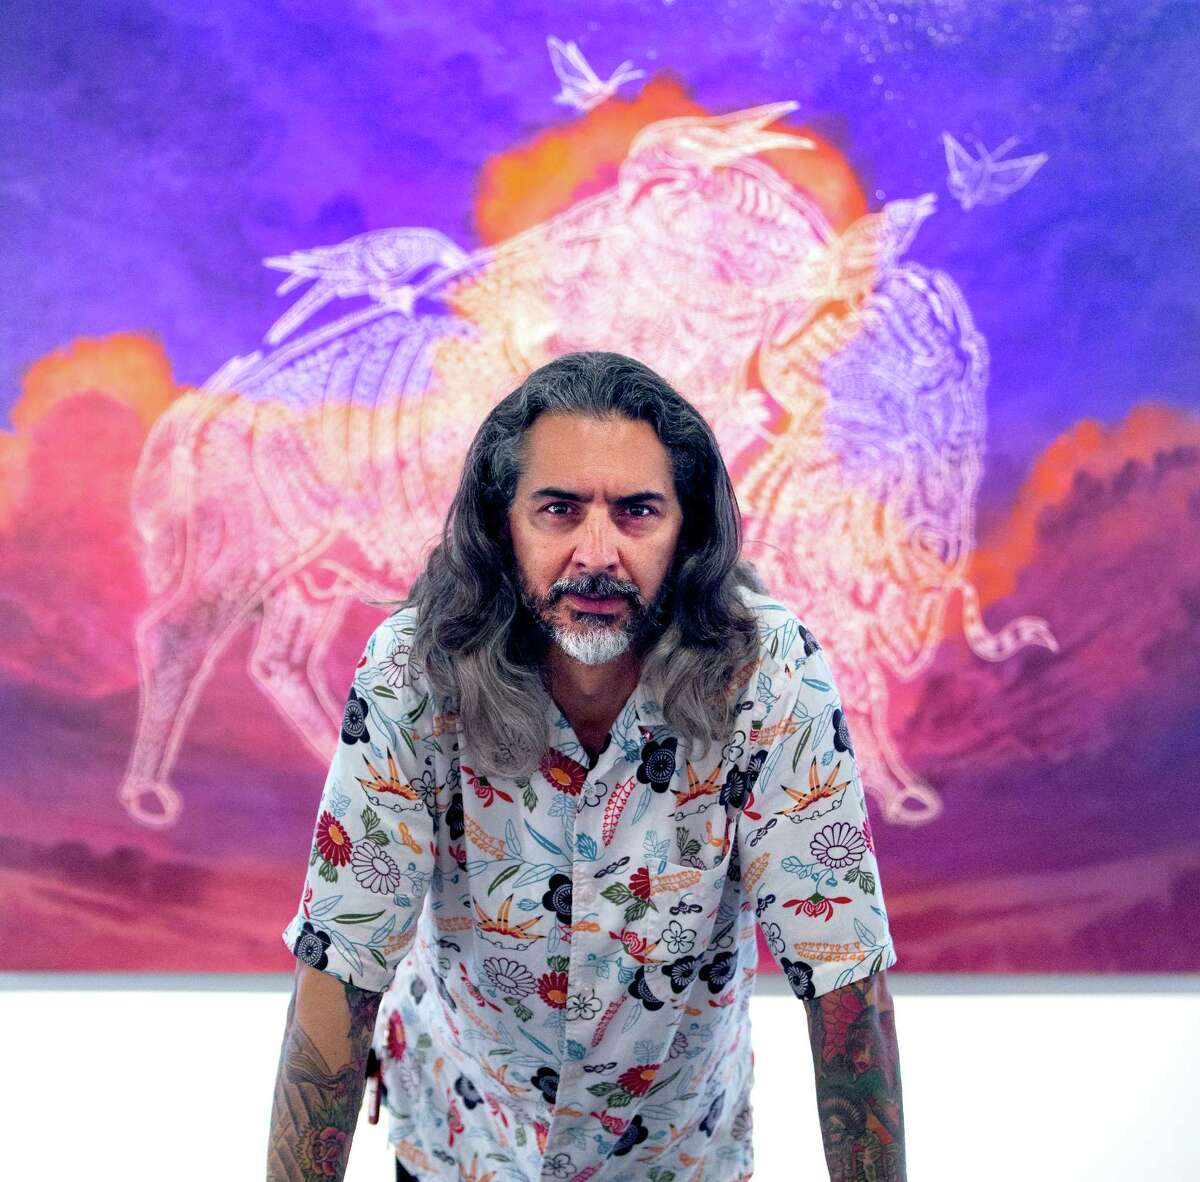 Artist Ricky Armendariz has been named the DoSeum's first artist in reference.